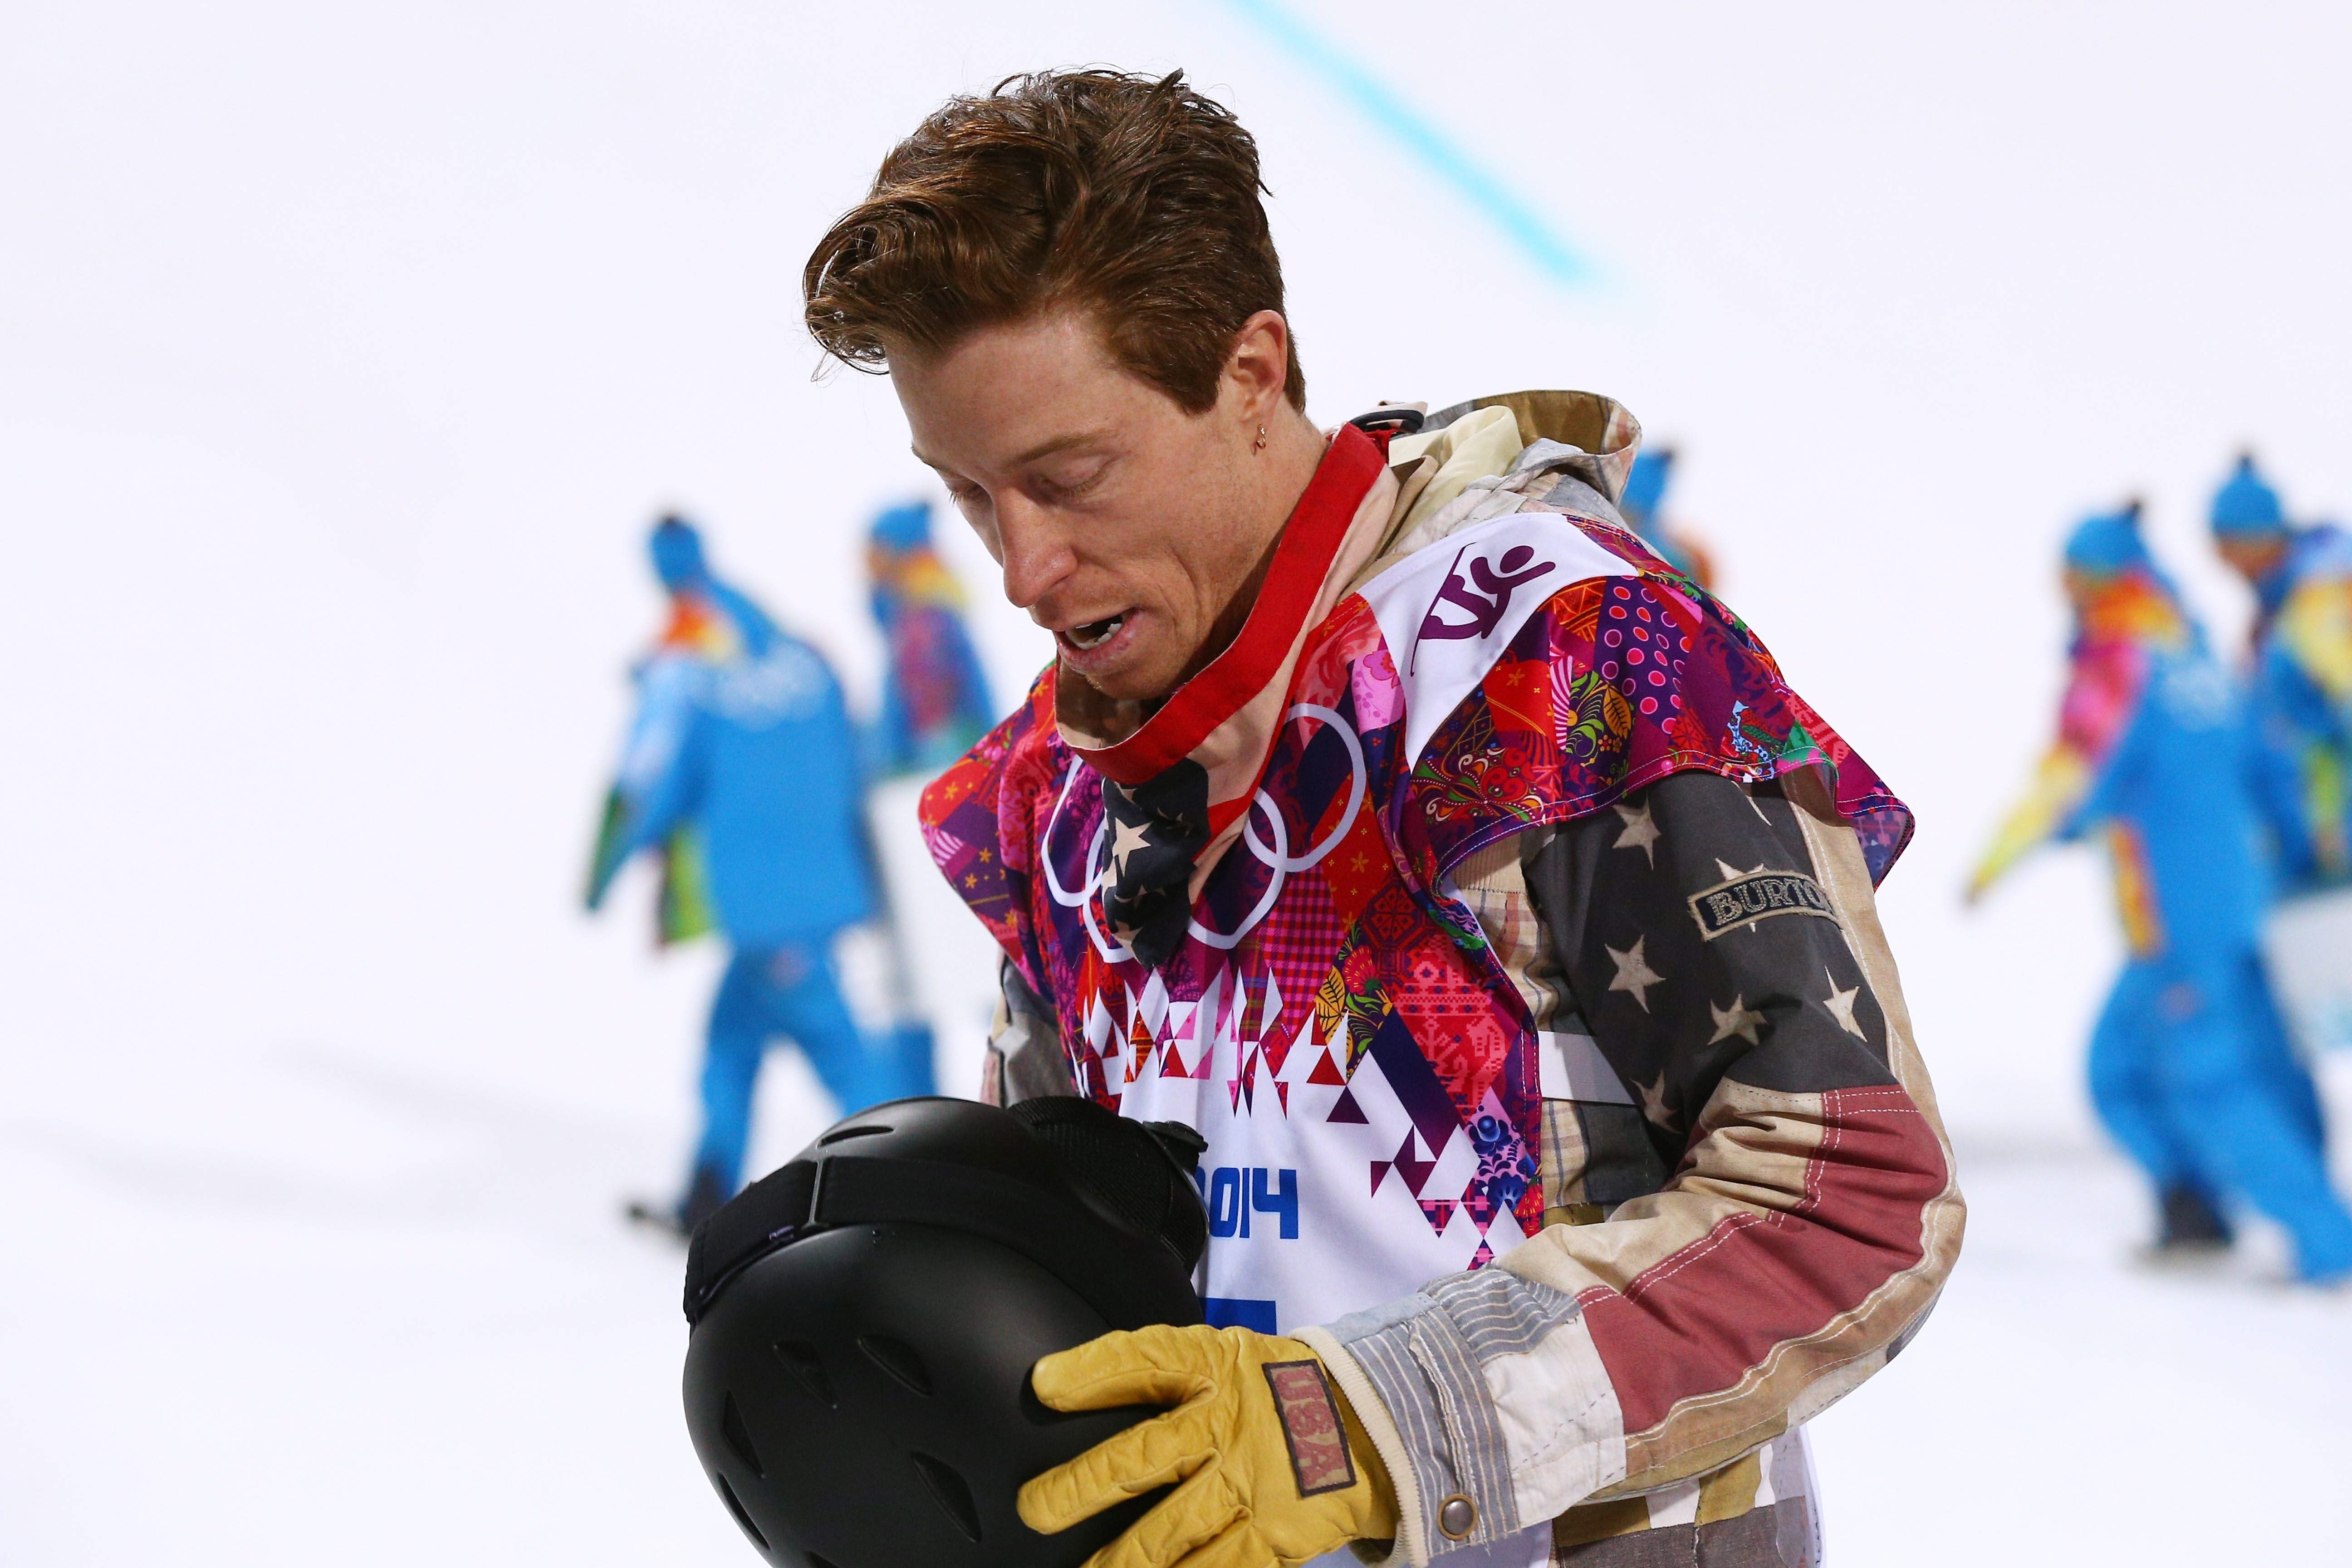 Shaun White reacts after competing in the Snowboard Men's Halfpipe Finals on Tuesday in Sochi, Russia.